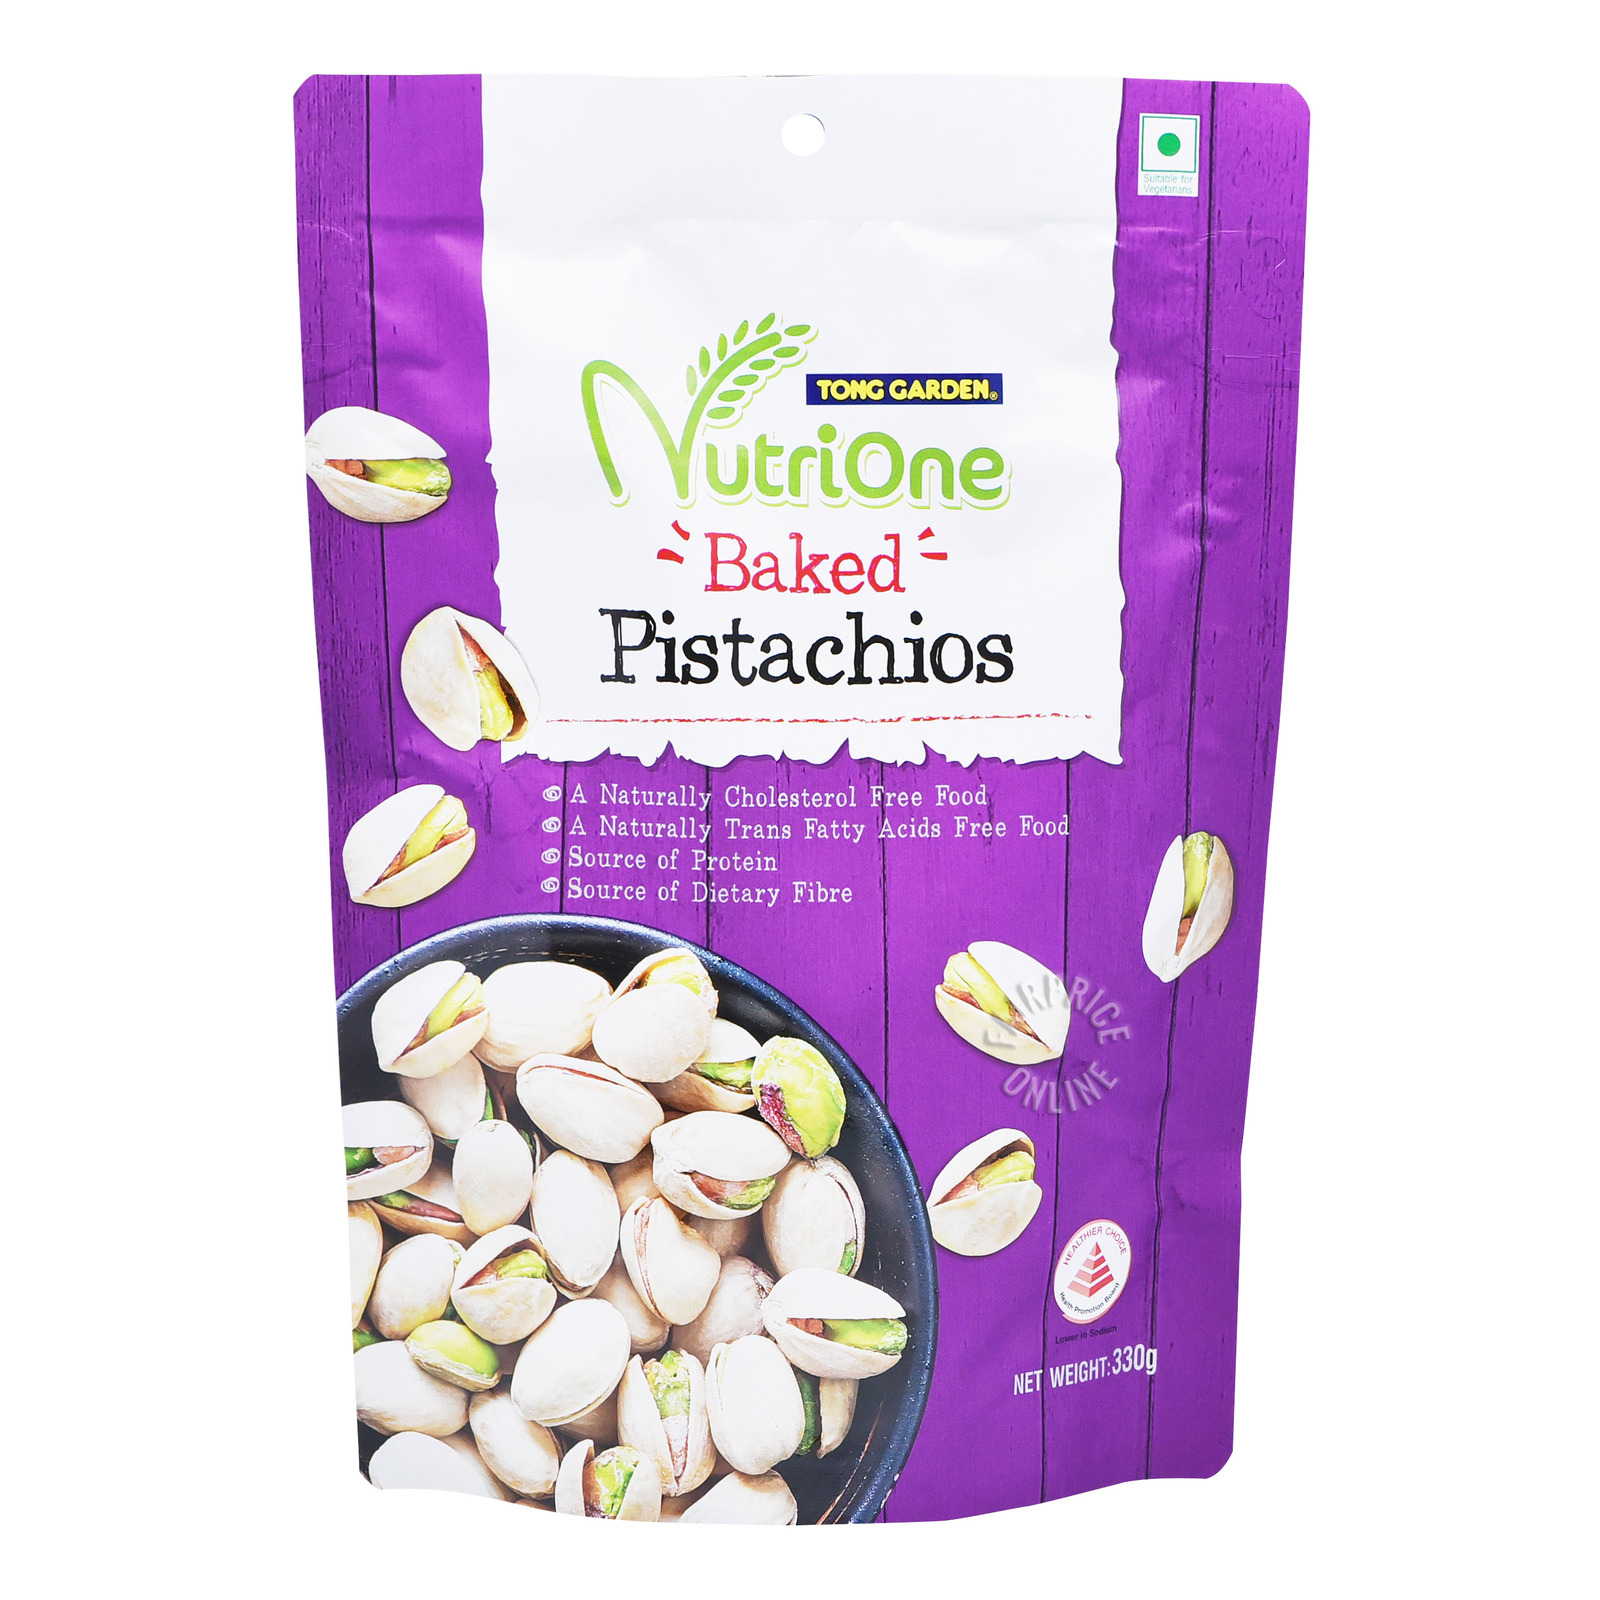 Tong Garden Nutrione Baked Nuts - Pistachios